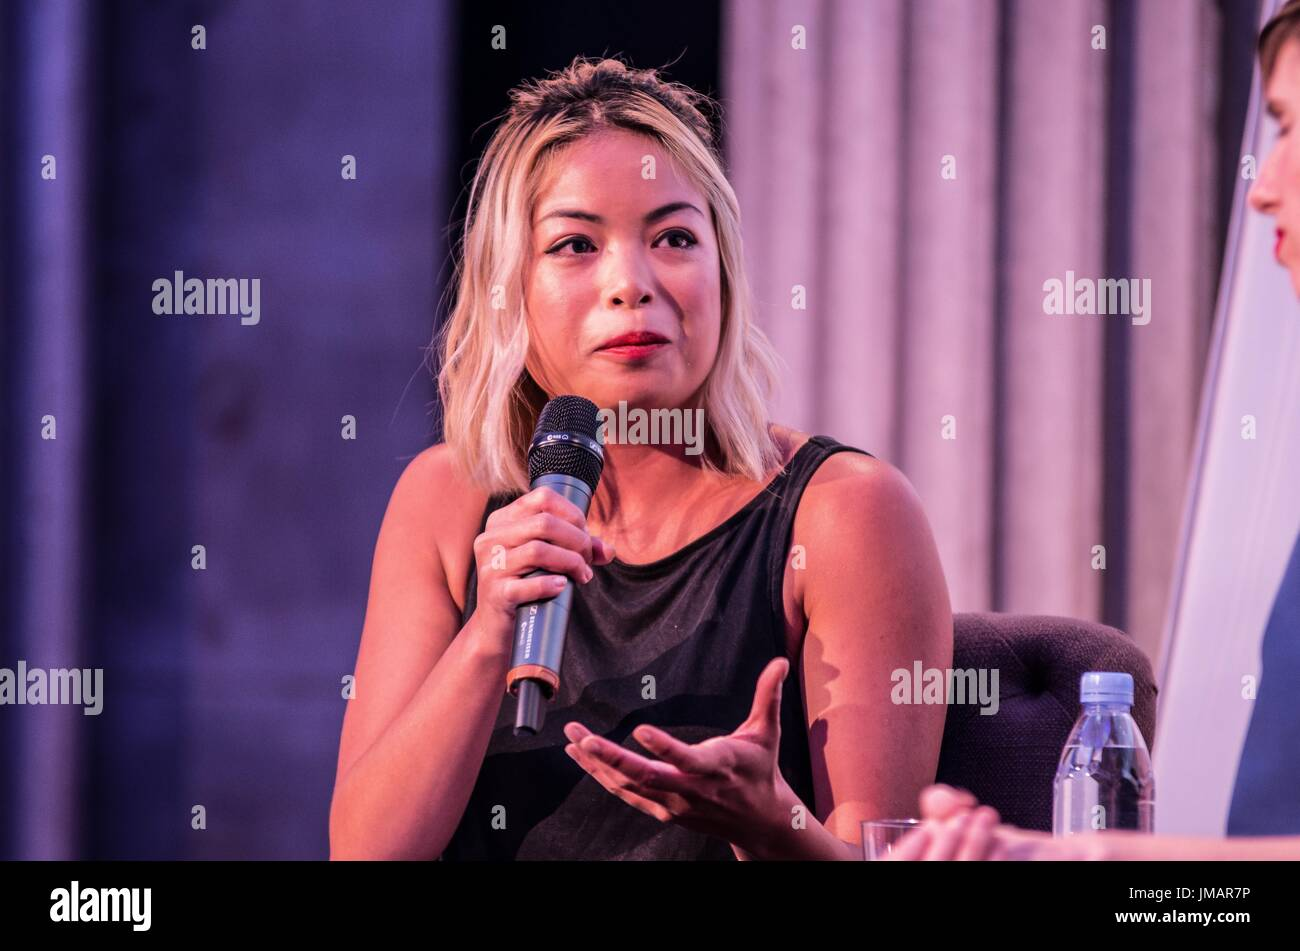 New York  USA  26th July  2017  Jia Tolentino of The New Yorker  Led     Jia Tolentino of The New Yorker  Led by the endowment foundation Humanities  New York  a celebration of the centennial of Women s Suffrage was organized  at